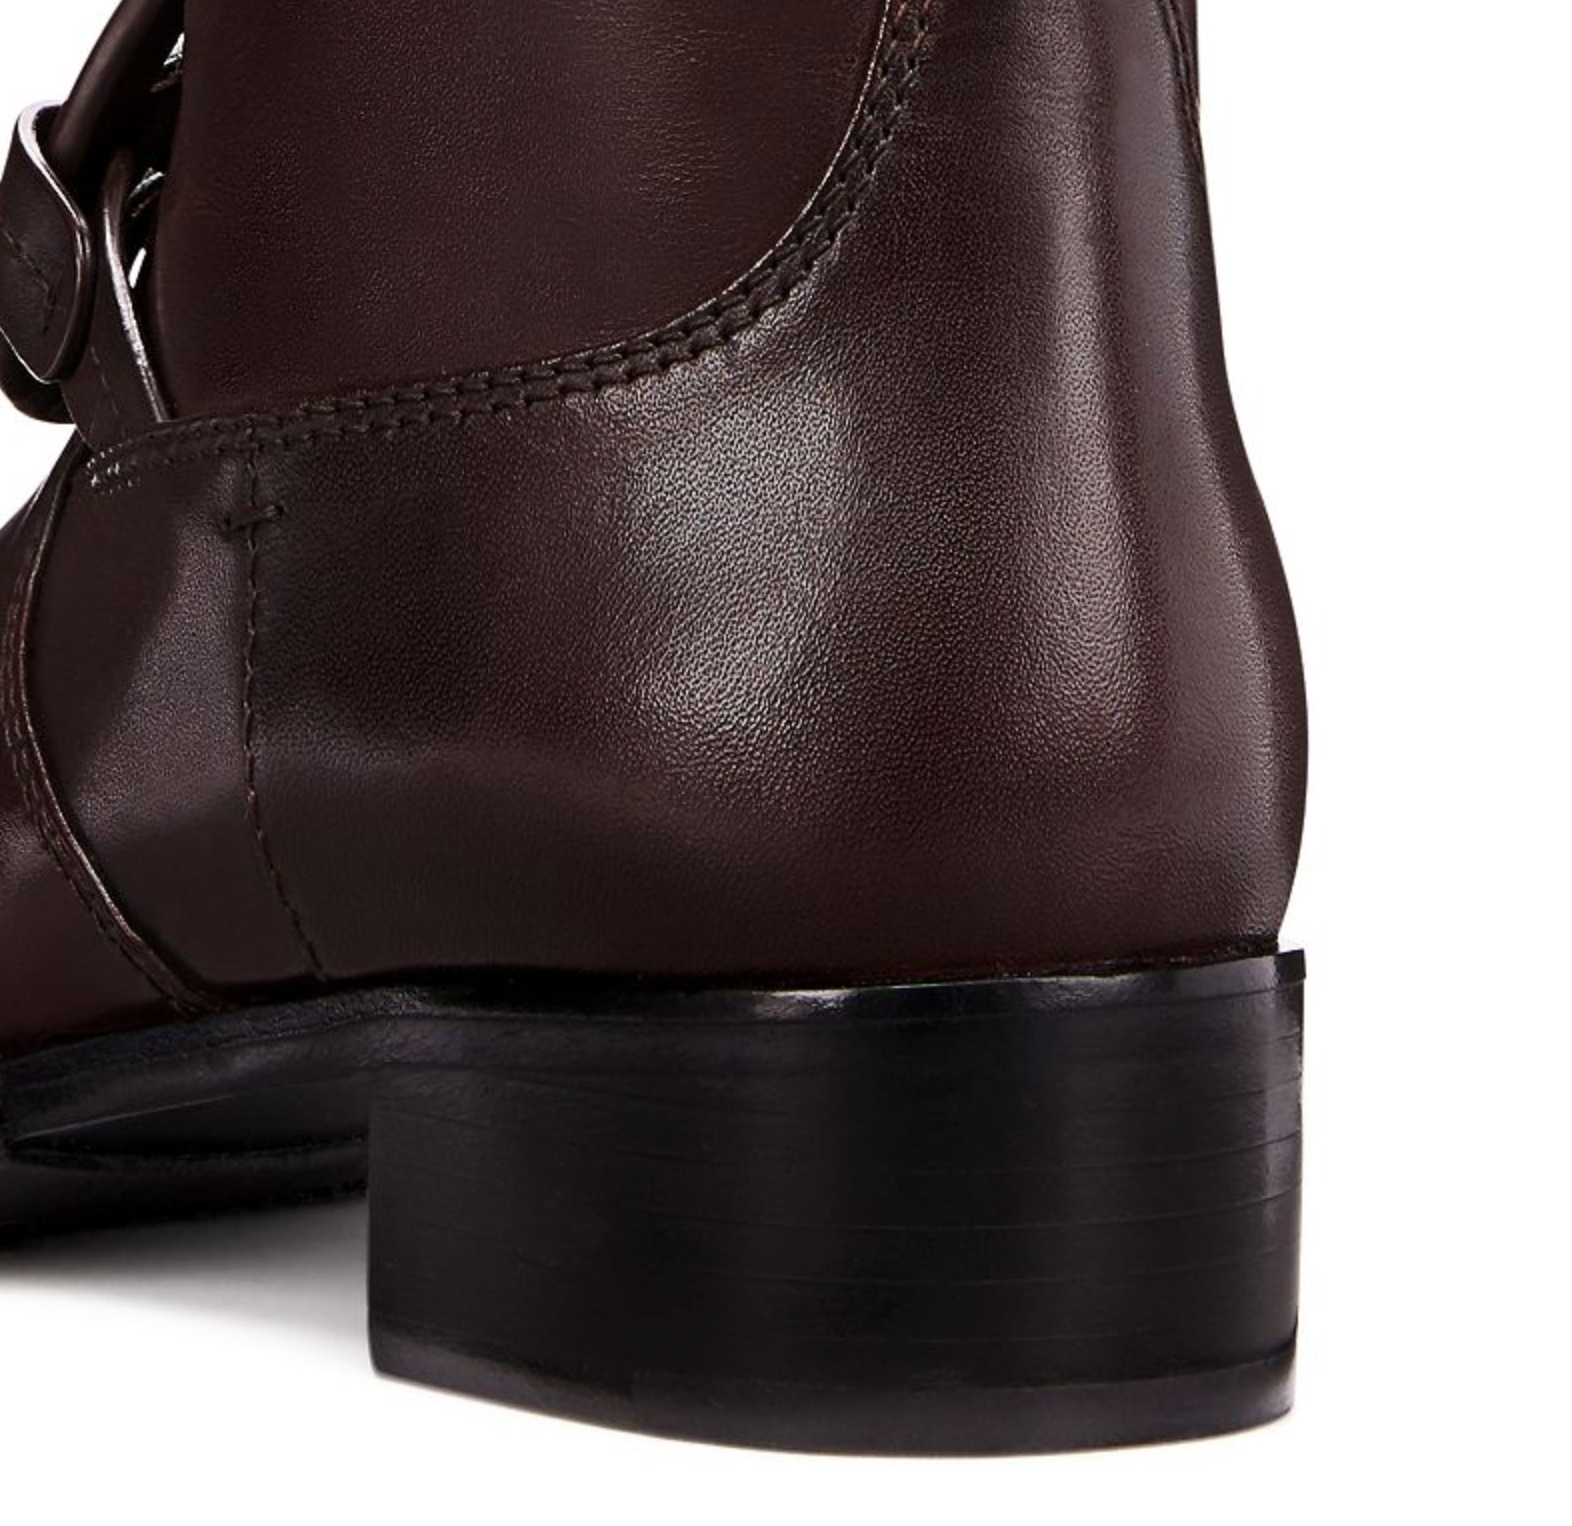 Tory Burch MILLER PULL-ON BOOT